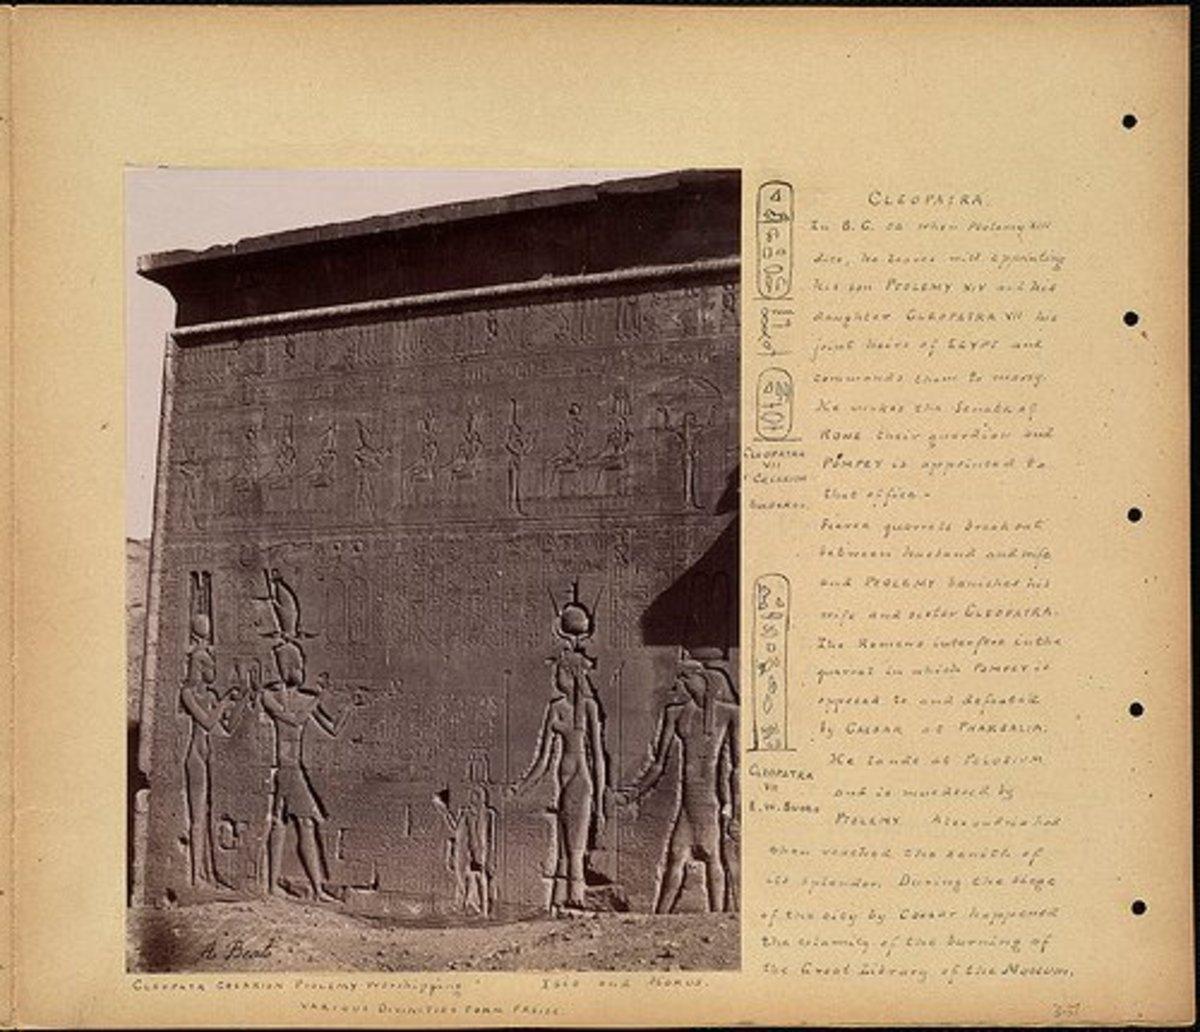 """Cleopatra"" by Beato Antonio, courtesy of the Boston Public Library"